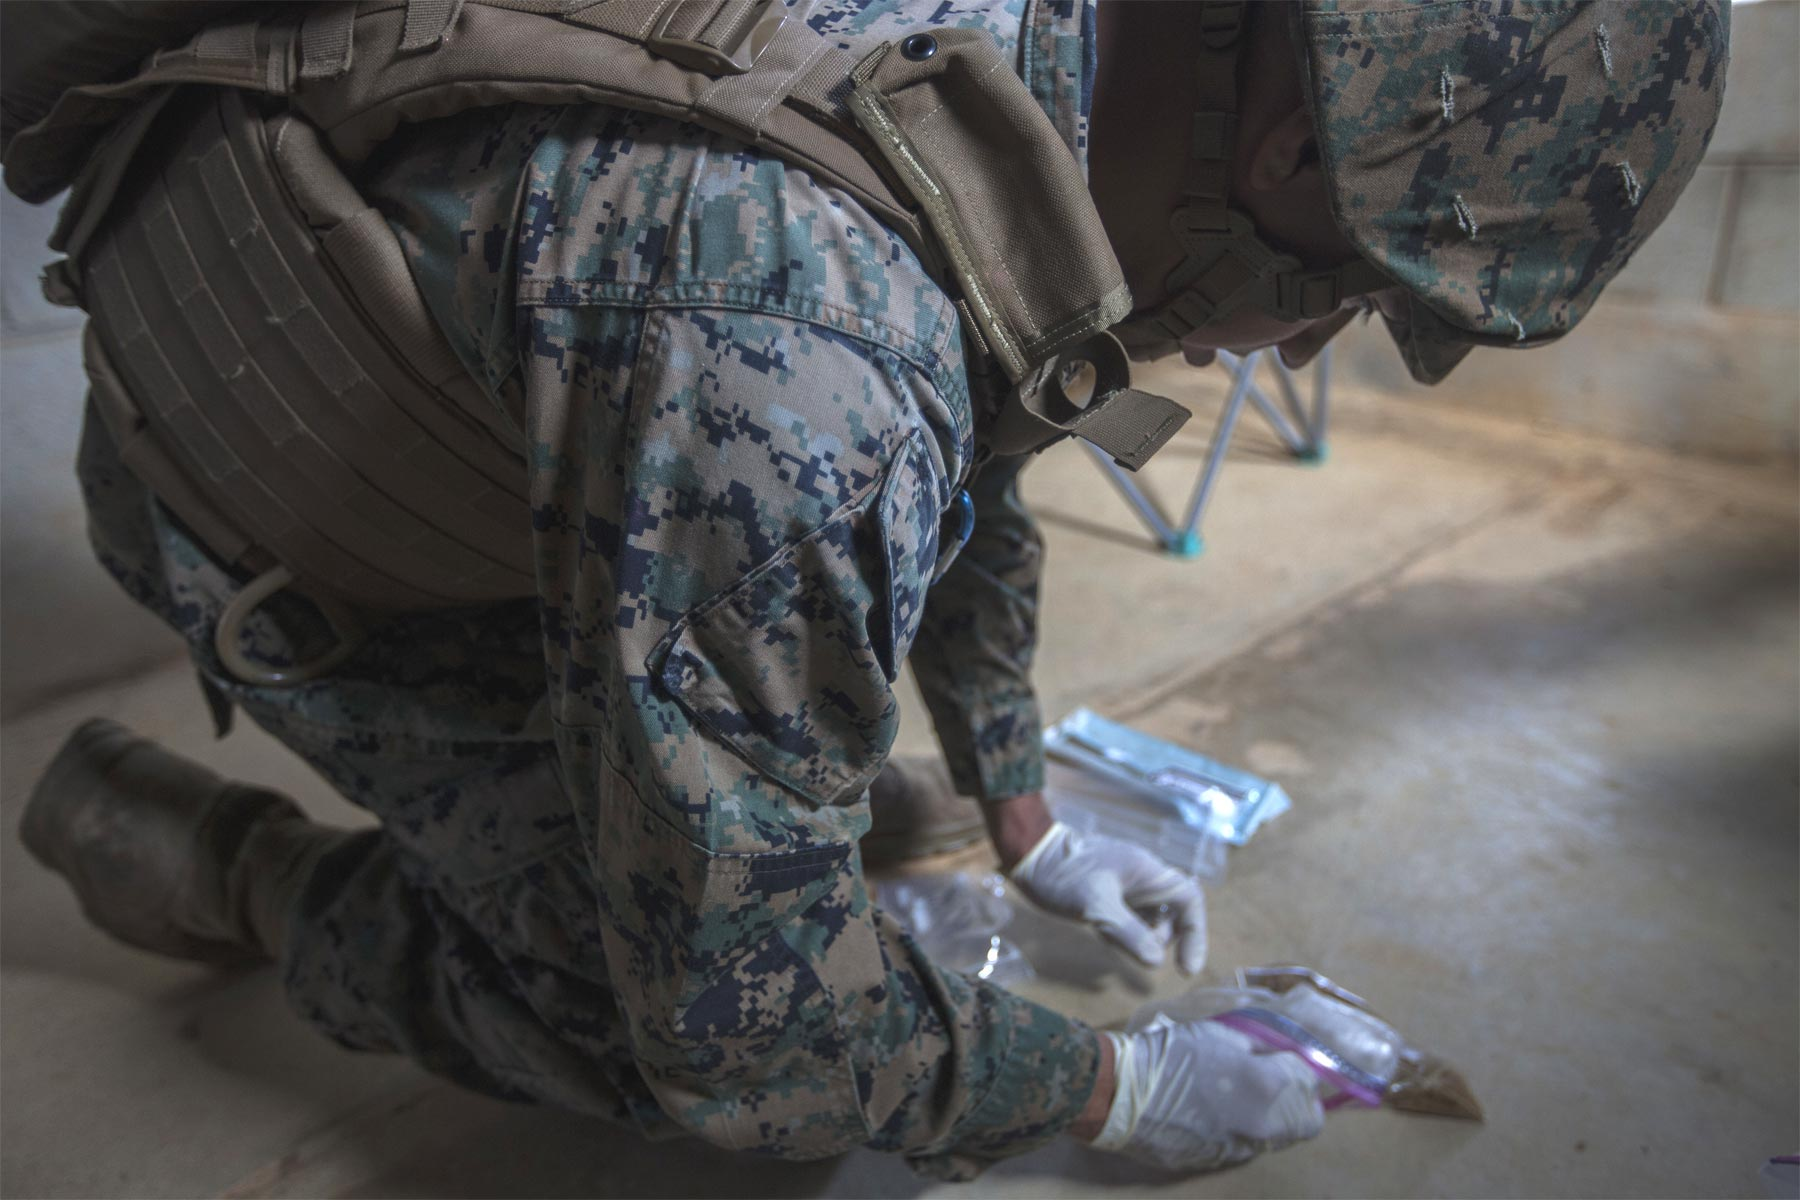 Csi Usmc Marines Get Upgraded Portable Forensics Labs Military Com